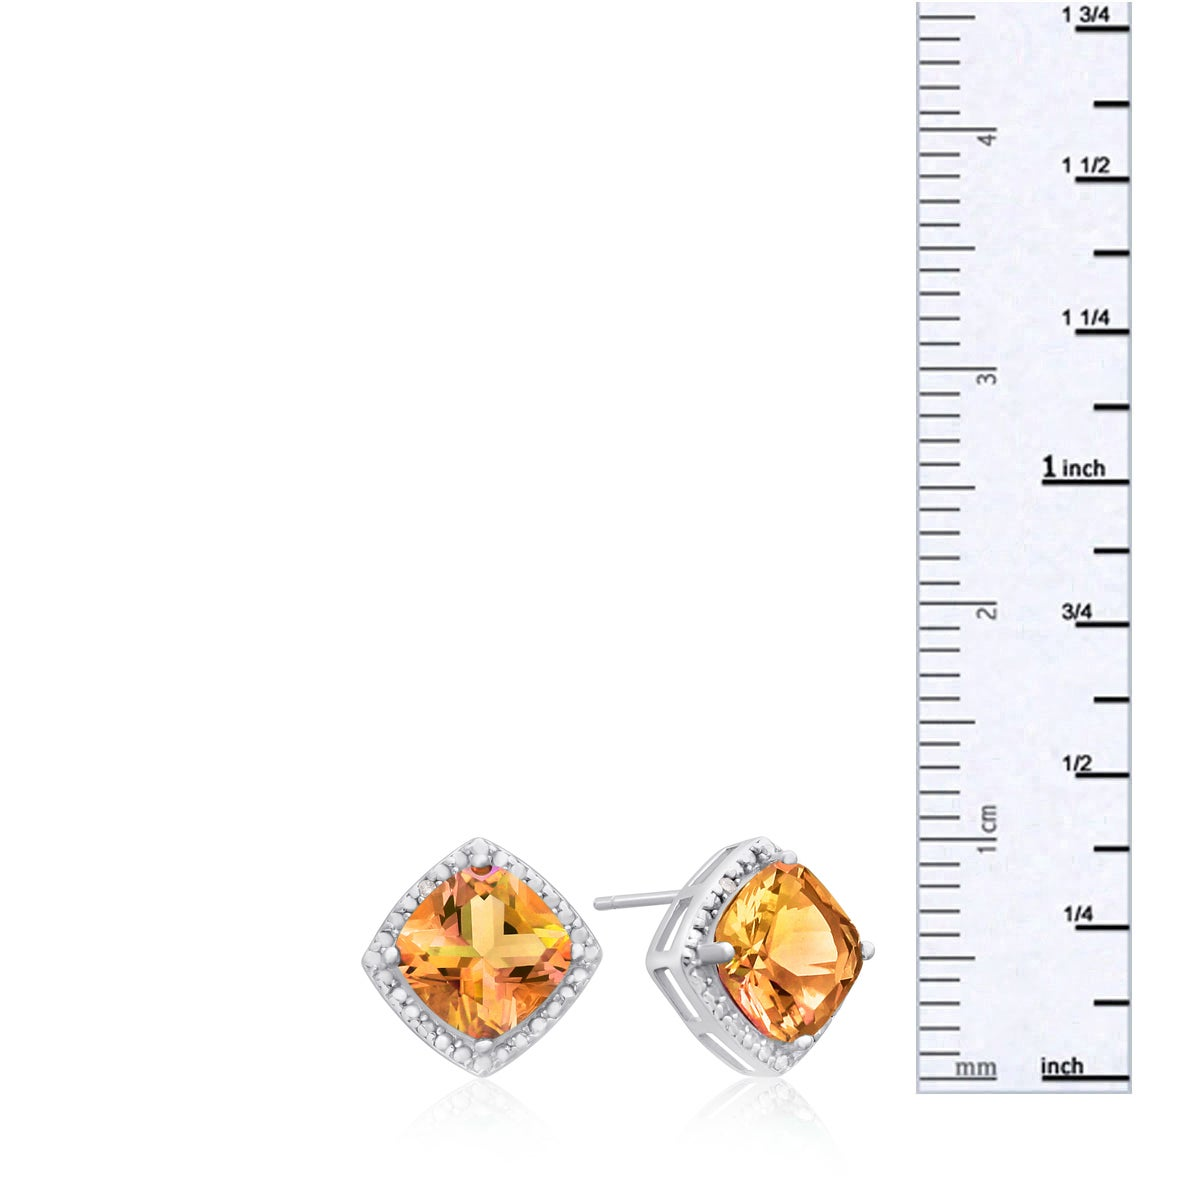 platinum sapphire item satellite earrings padparadscha